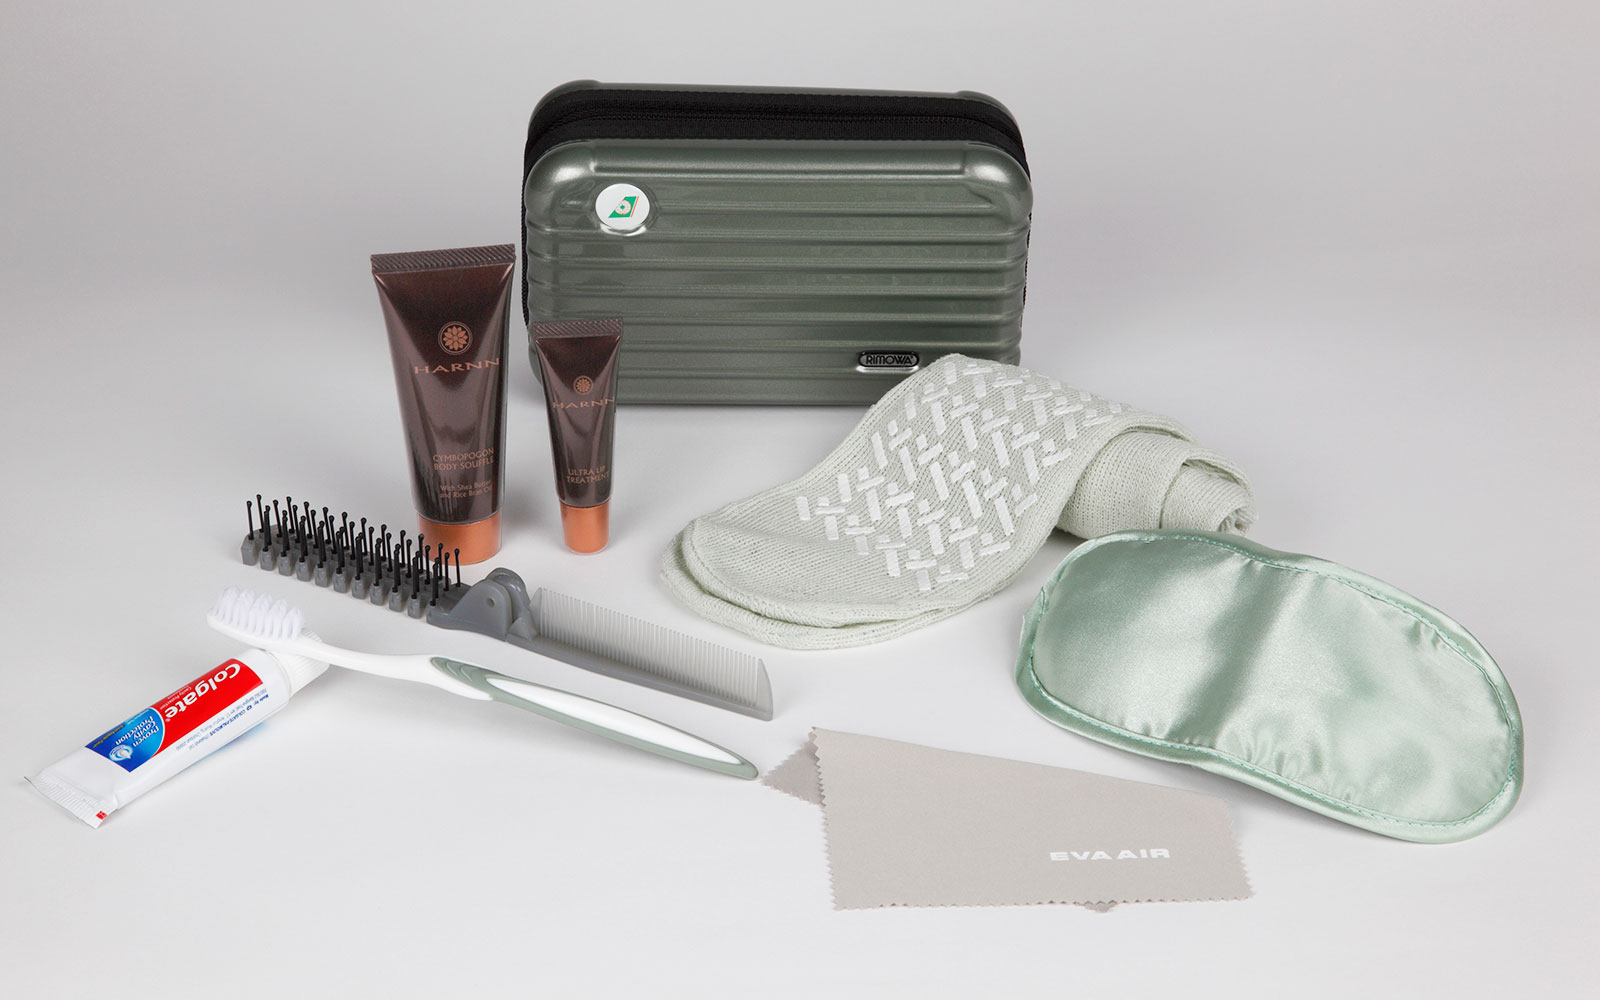 Coolest Airline Amenity Kits: EVA Air - Rimowa Amenity Kits in Royal Laurel Business Class